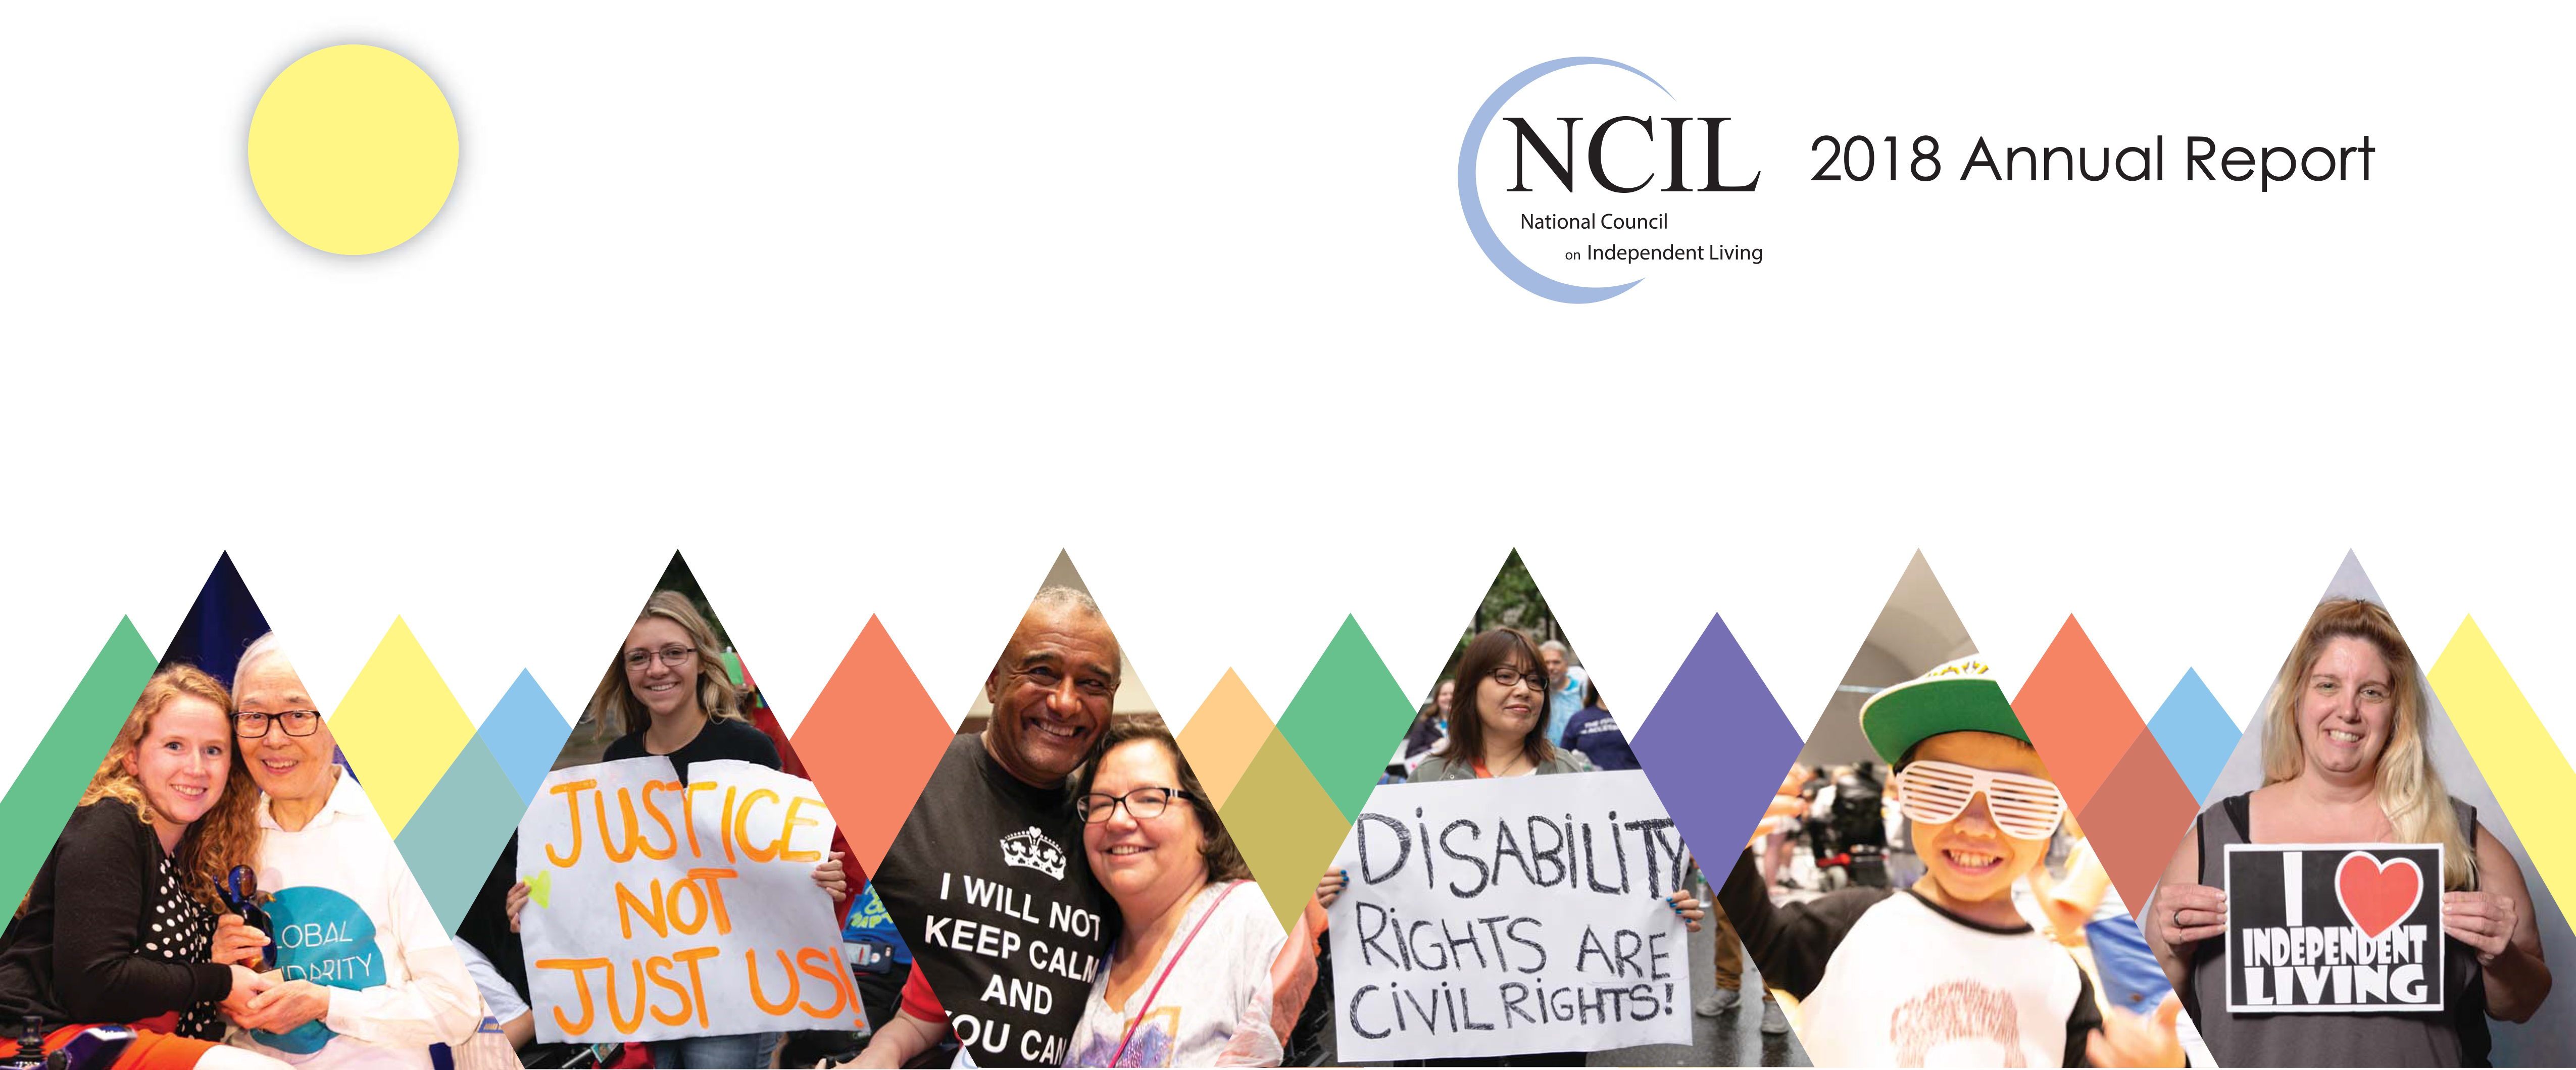 "NCIL 2018 Annual Report Cover Art: Cover image features multi-colored triangles, a yellow sun, and six photos: 1. A NCIL member holds a sign that reads, ""I [heart] Independent Living""; 2. Jackson Cokley, age 7, dances at the 2018 Closing Social; 3. A NCIL Member holds a sign that reads, ""Disability Rights Are Civil Rights""; 4. Two NCIL members hug each other and smile for the camera at the 2018 Annual Conference; 5. A NCIL Member holds a sign that reads, ""Justice not Just Us""; 6. Stephanie Woodward and Yoshiko Dart hug each other while Stephanie holds an award from the NCIL Women's Caucus. Image stretches across the front and back cover of the report."